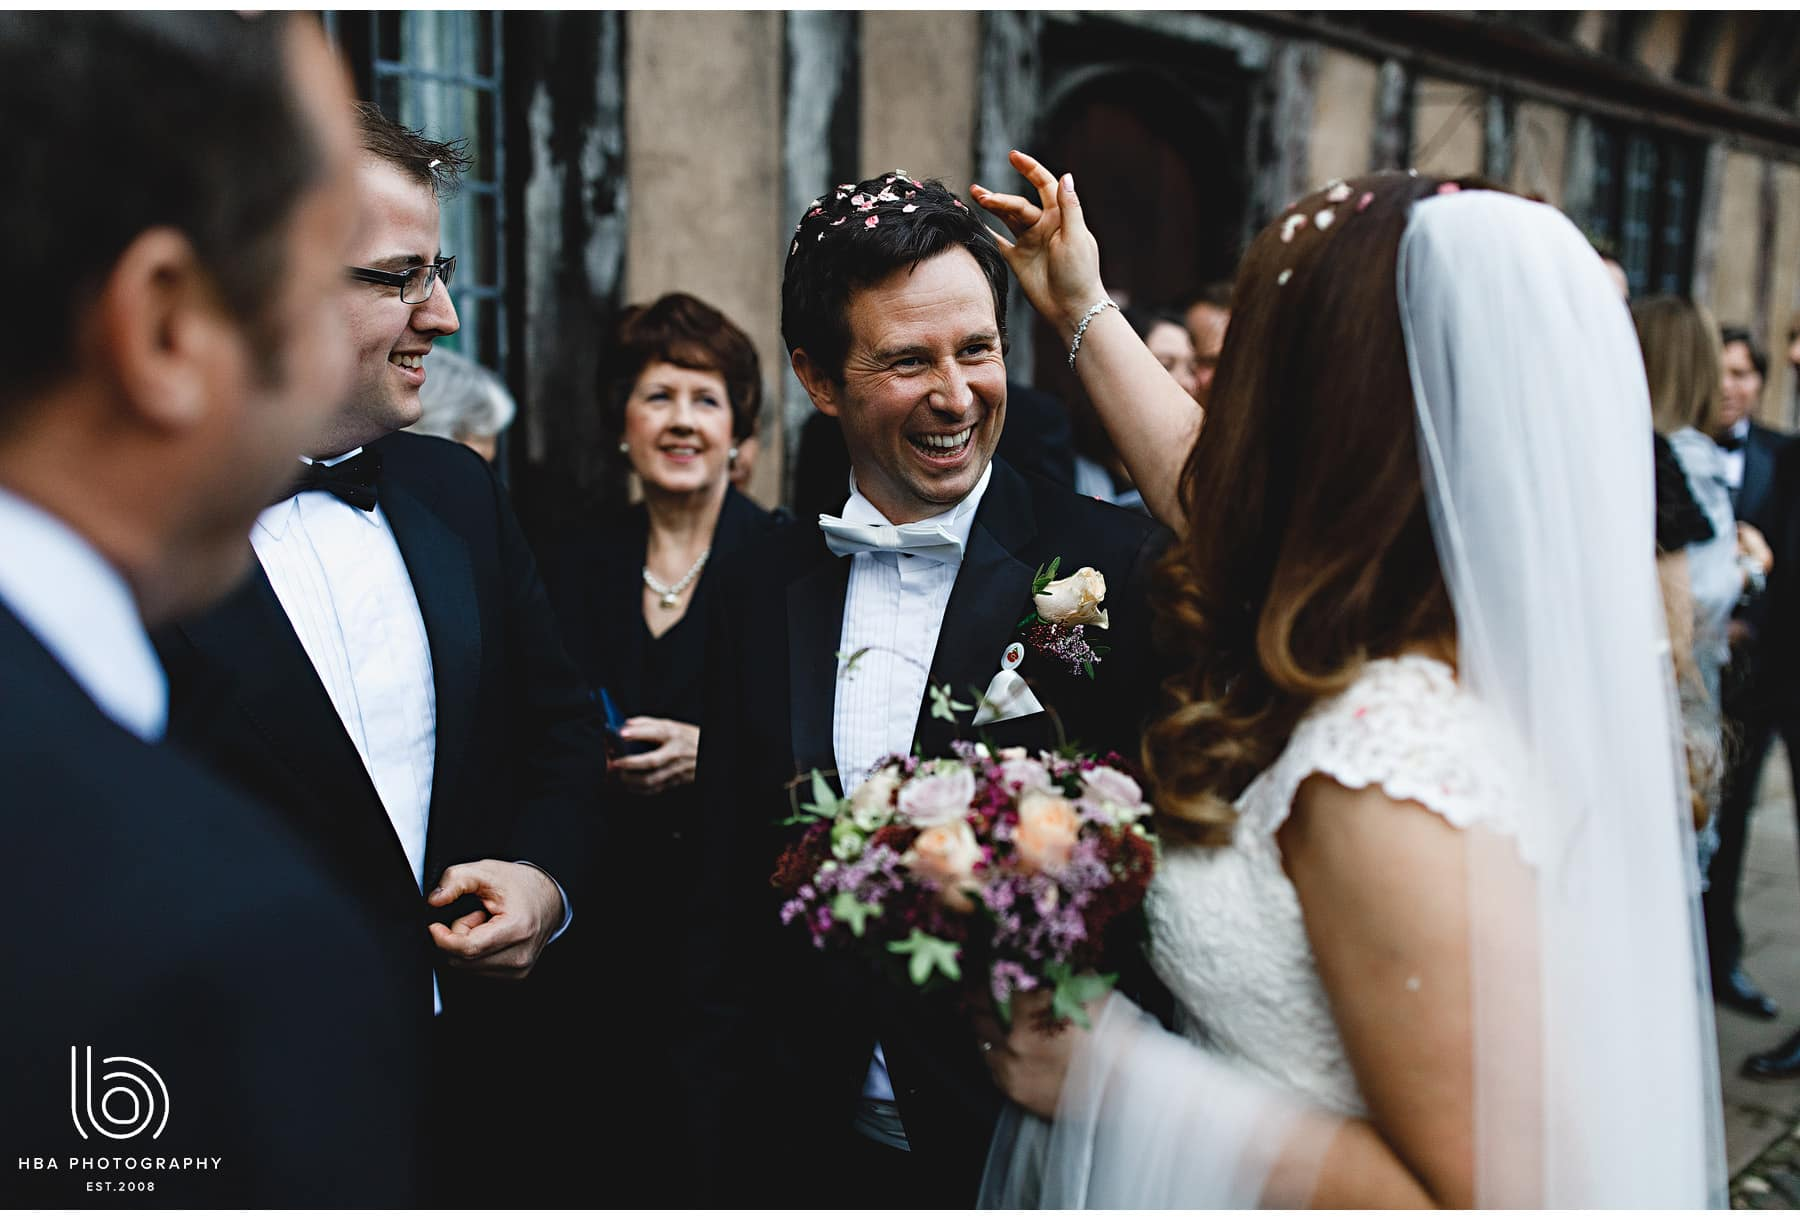 the groom with confetti in his hair